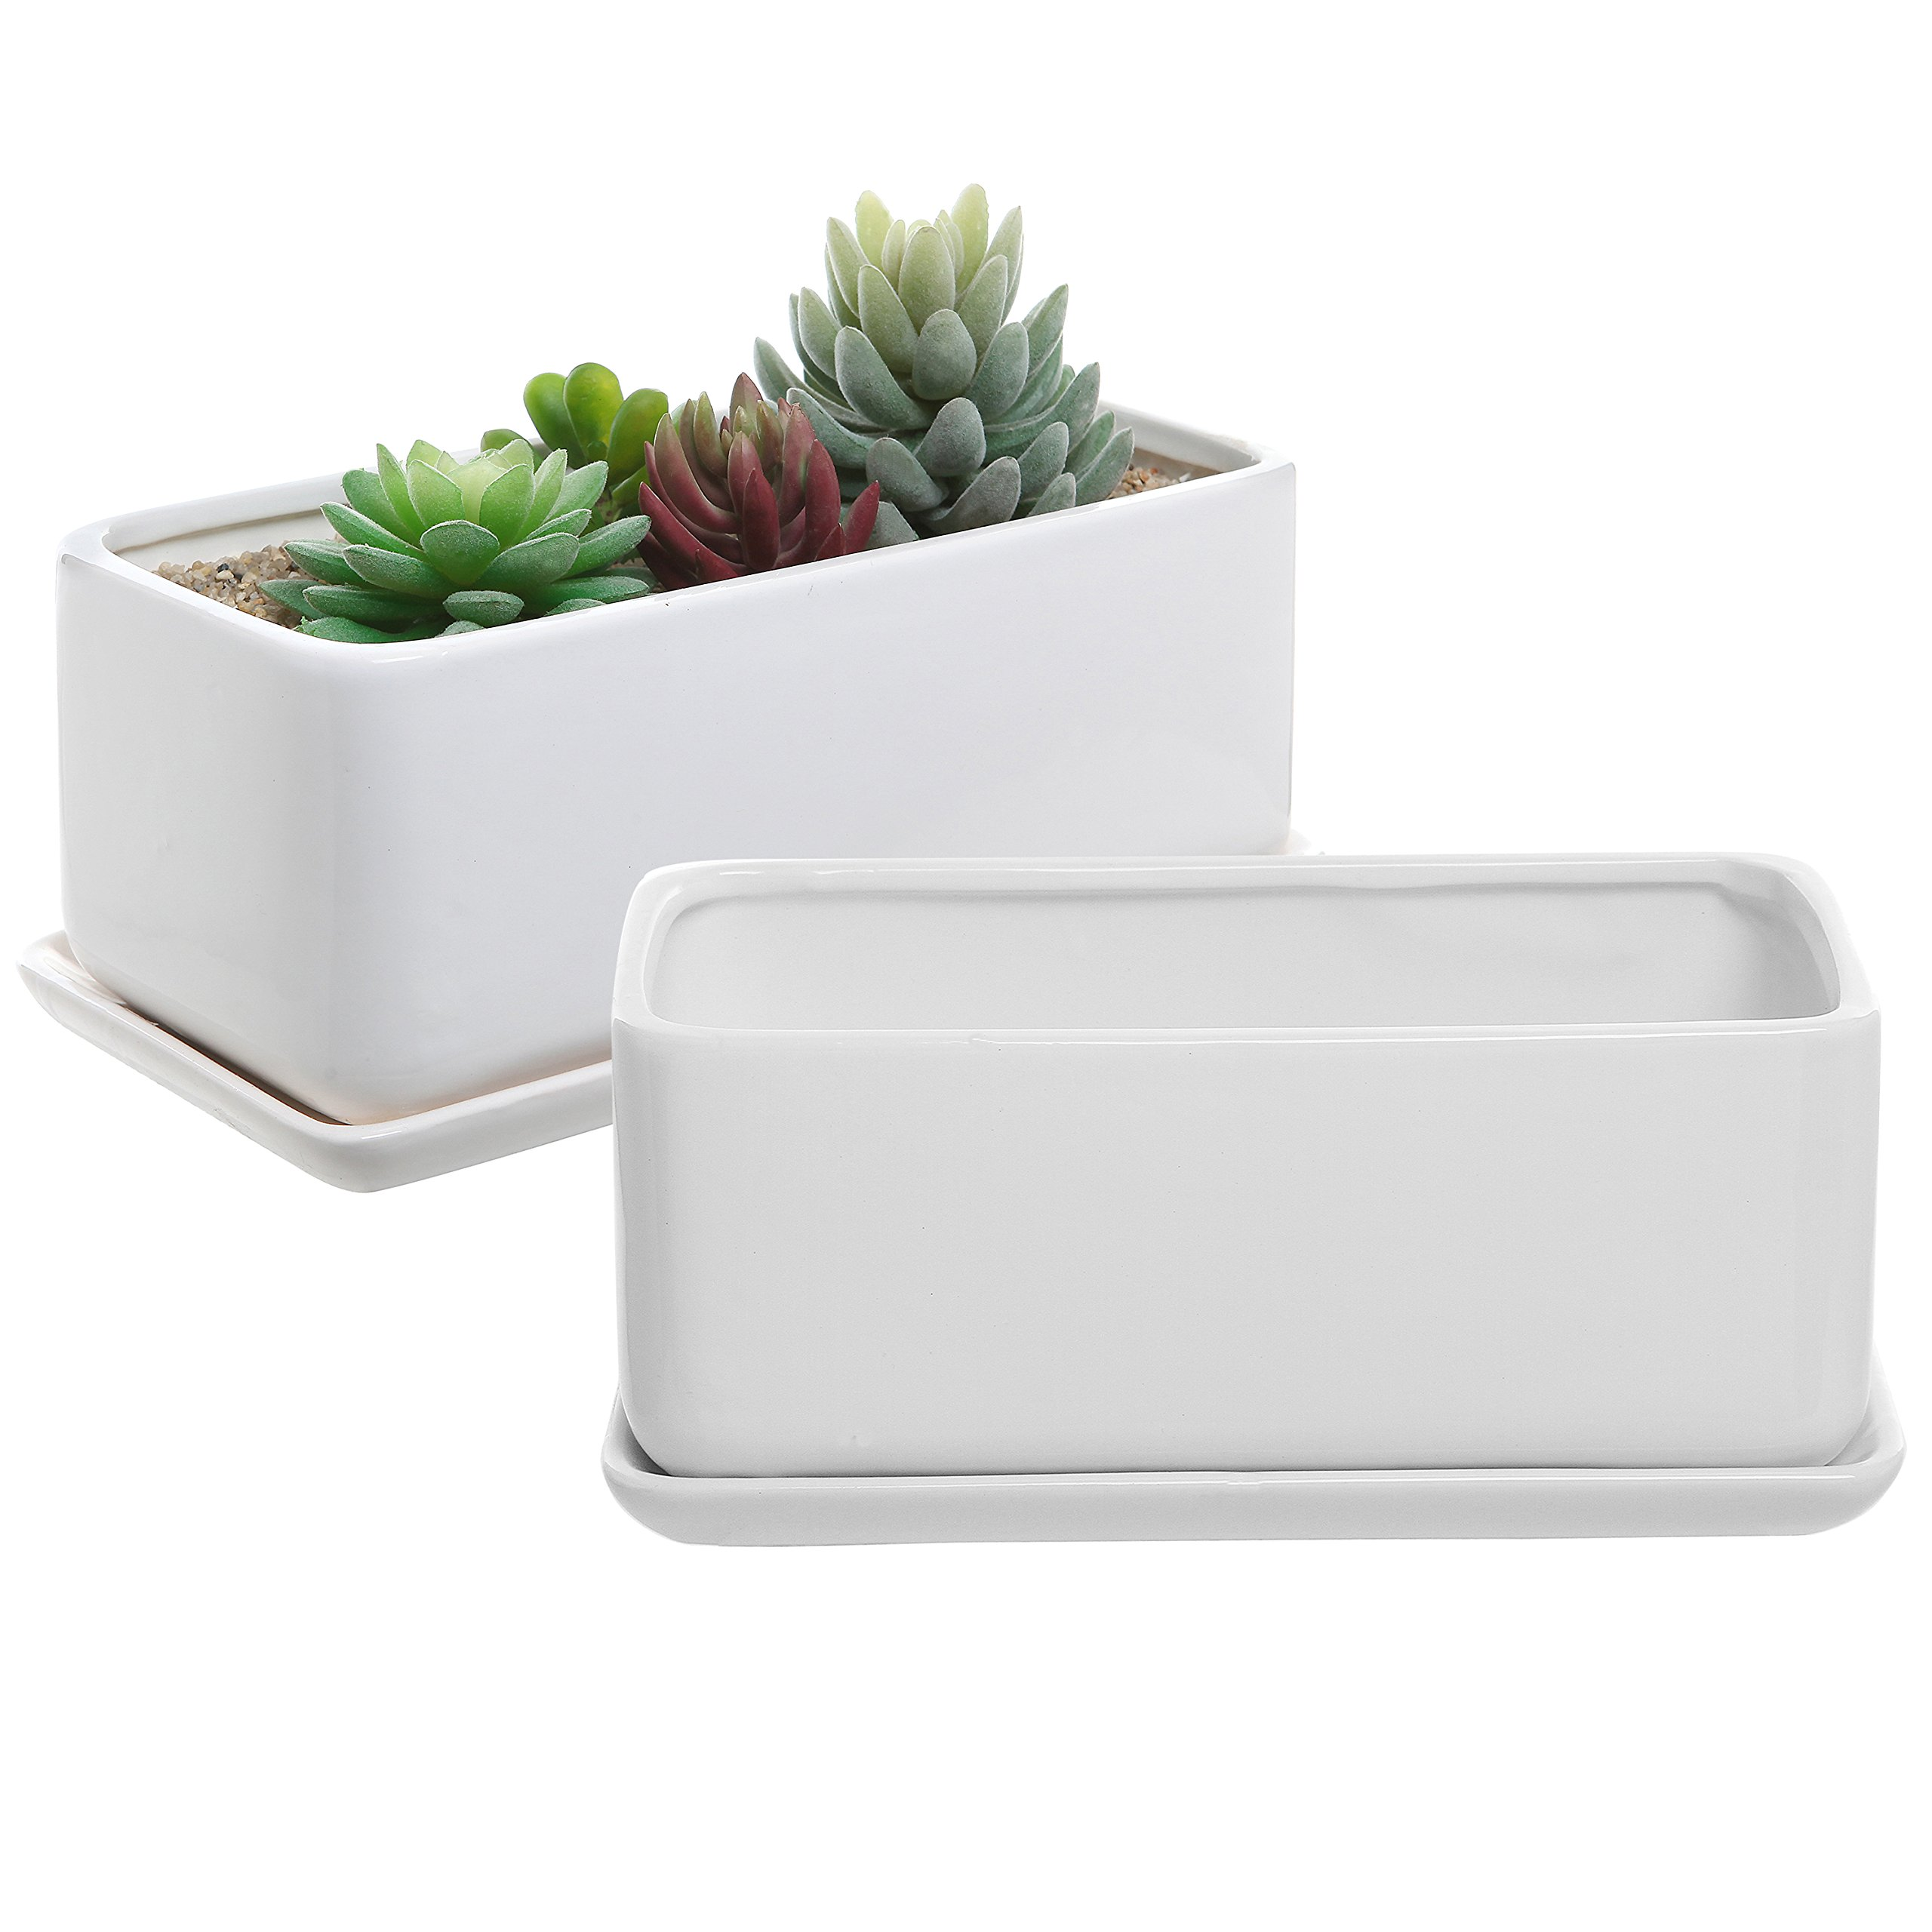 10 inch White Ceramic Rectangular Succulent Planter Pots with Removable Drip Tray, Set of 2